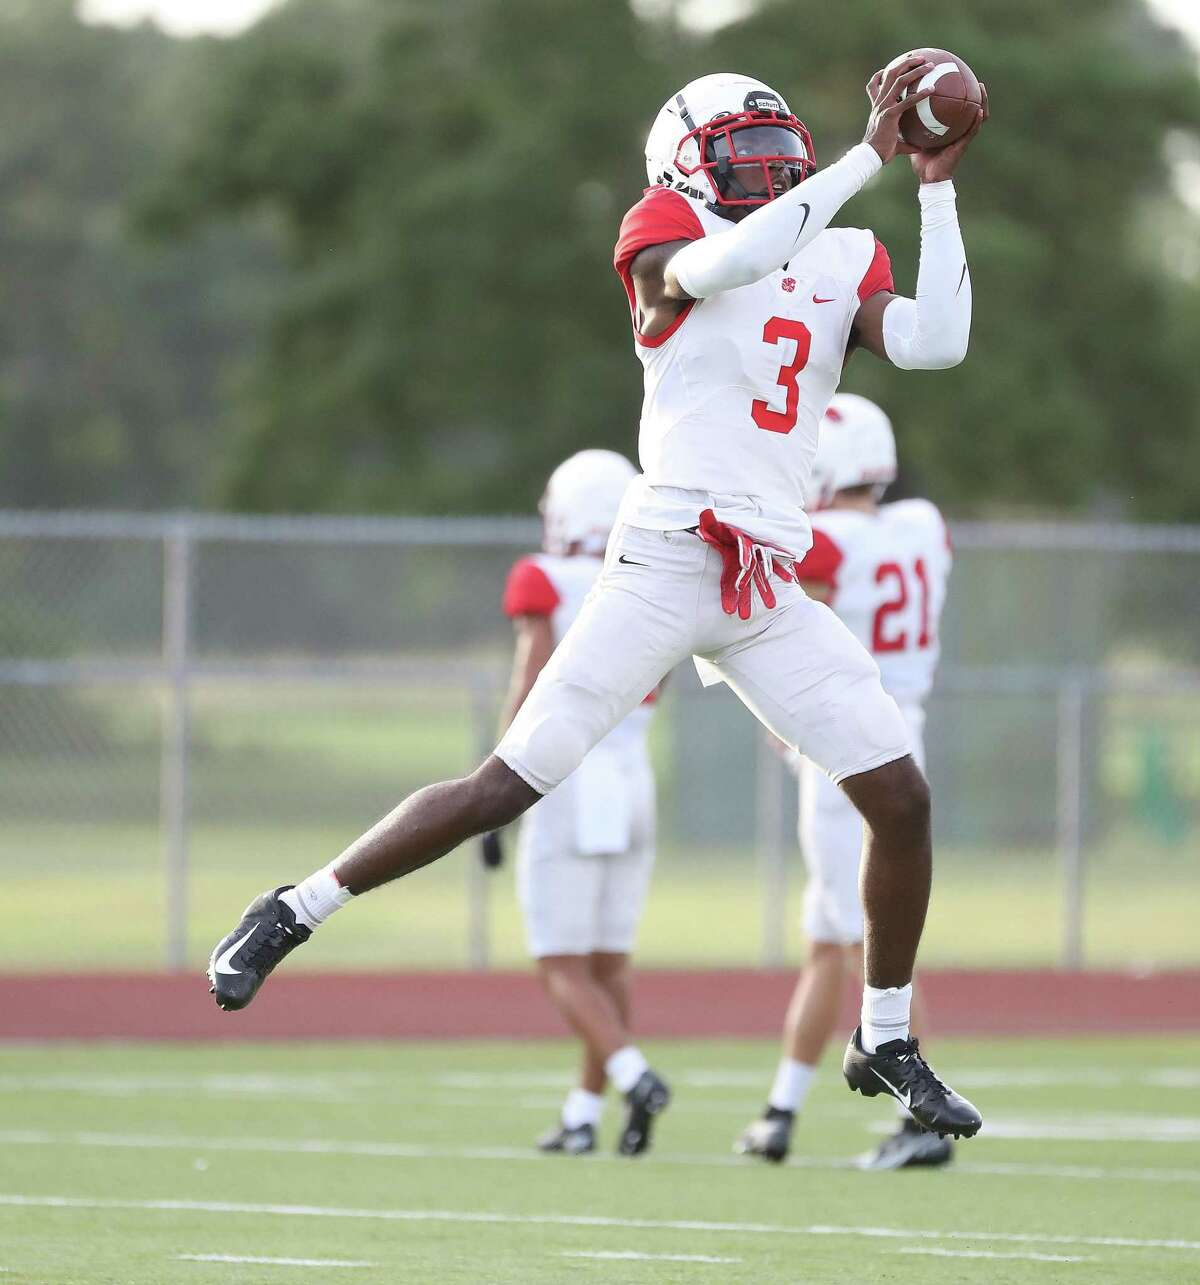 Katy High School DB Bobby Taylor catches a pass in warmups before a high school football scrimmage between Katy High School and Klein Collins at Klein Collins High School, Thursday, August 19, 2021, in Spring.